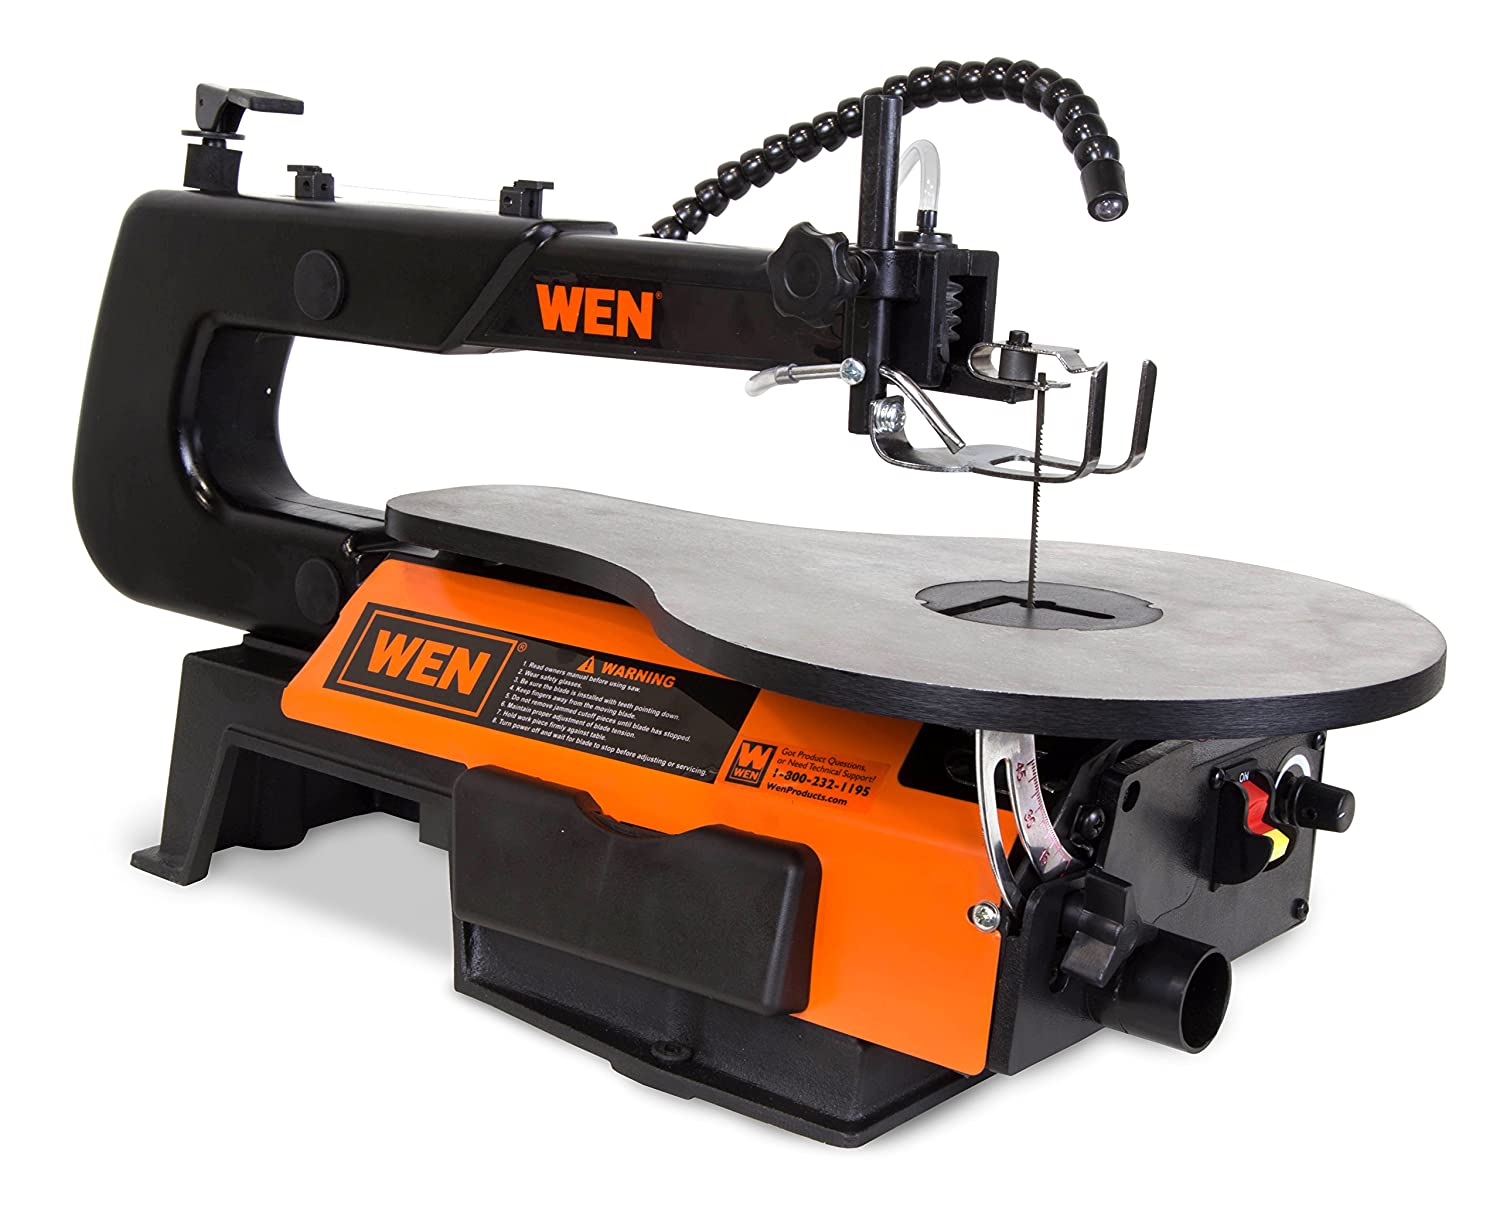 The Best scroll saw - Our pick